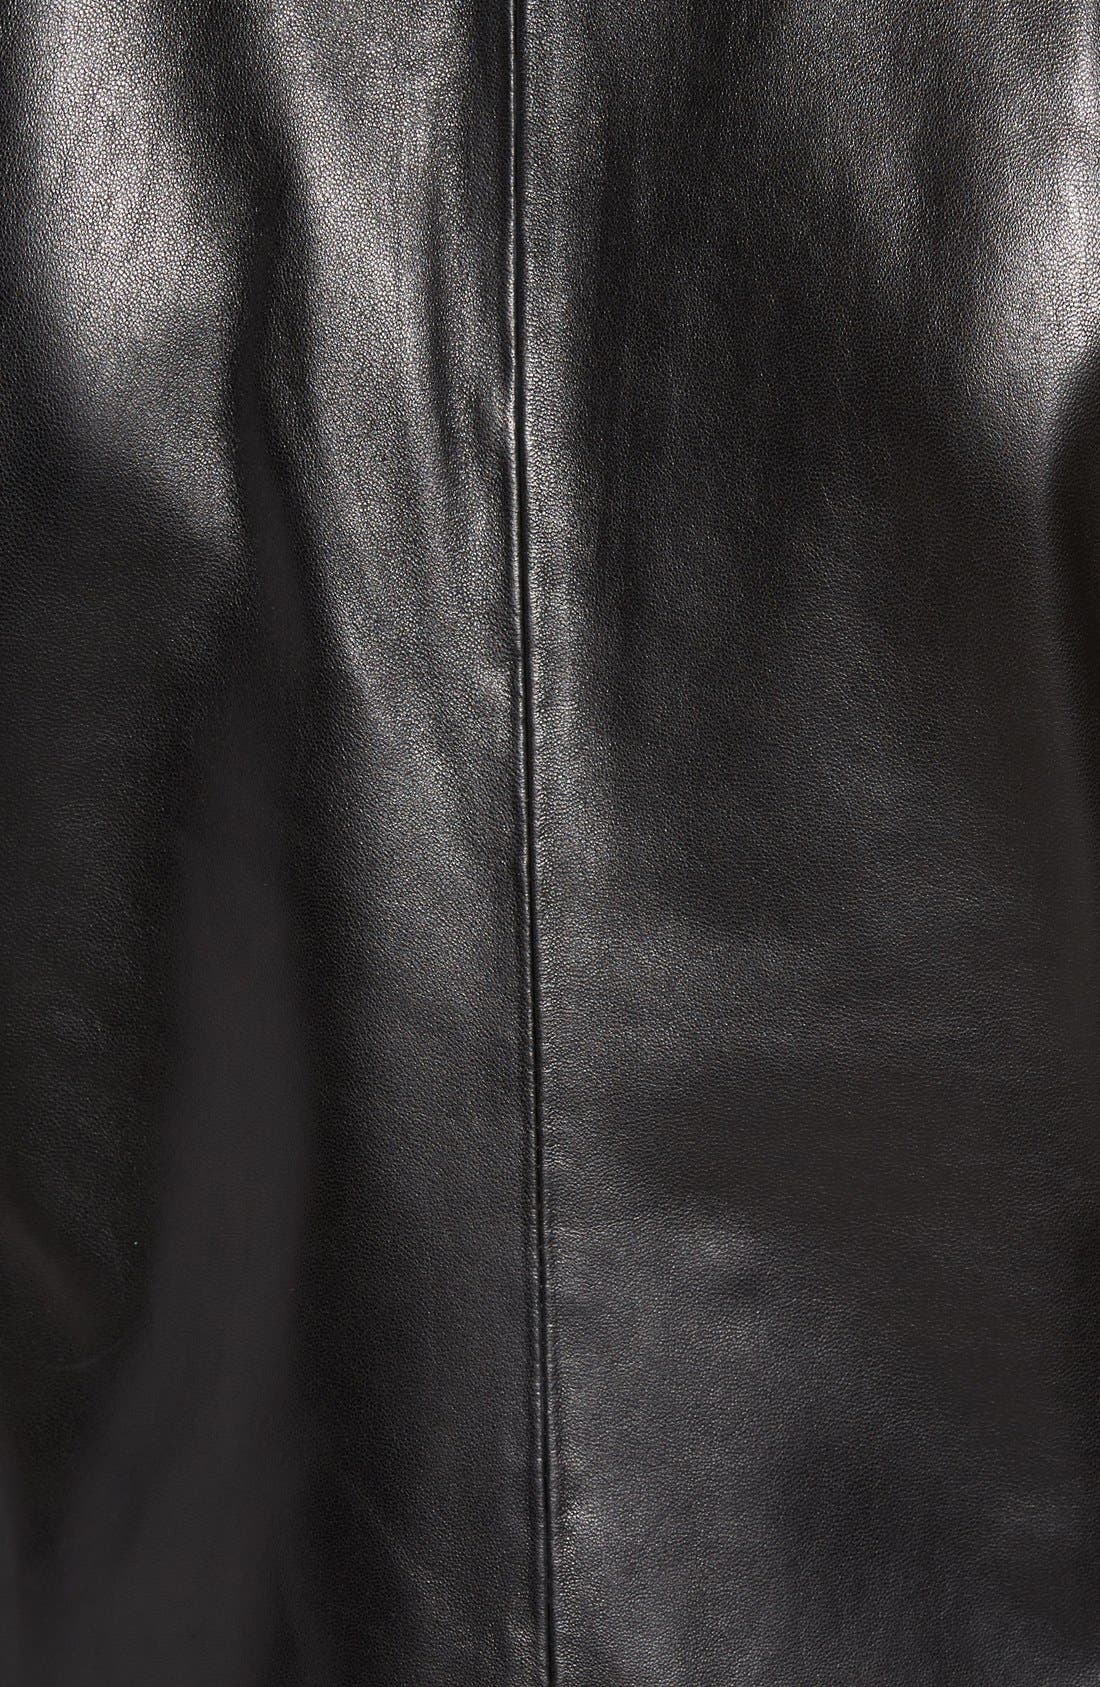 Wing Collar Leather Jacket,                             Alternate thumbnail 5, color,                             001